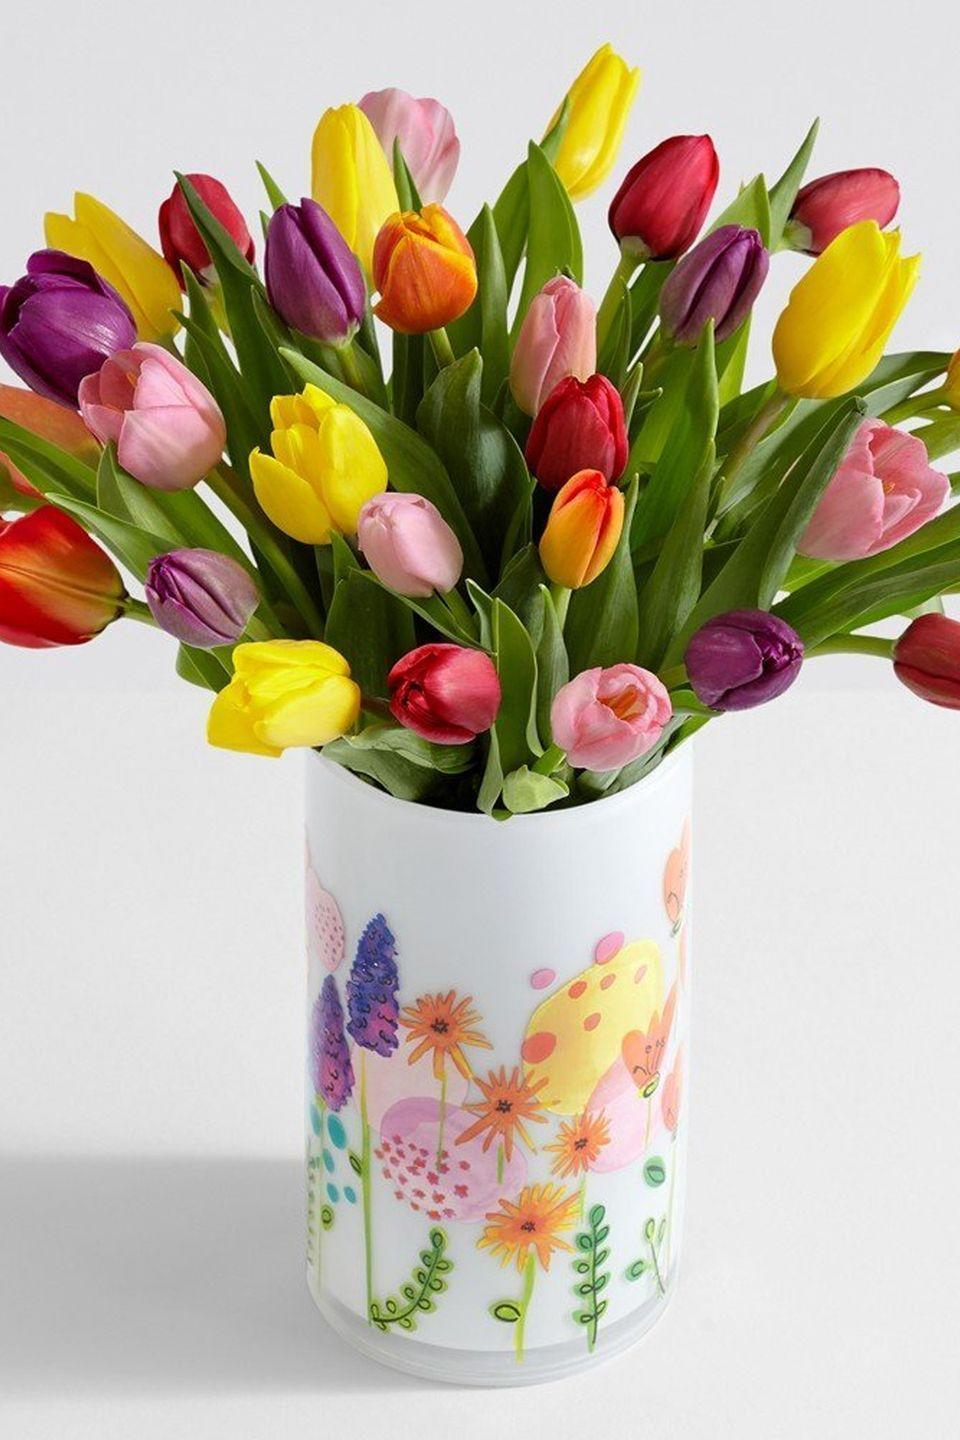 """<p>If your position for your tablescape is the more color, the better, this vase of five different shades of tulips will blend right in.</p><p><strong><em>Vintage Lavender Frosted Fenton Vase,</em></strong> <strong><em>$45</em></strong> <a class=""""link rapid-noclick-resp"""" href=""""https://go.redirectingat.com?id=74968X1596630&url=https%3A%2F%2Fwww.etsy.com%2Flisting%2F702862015%2Fvintage-lavender-satin-glass-vase&sref=https%3A%2F%2Fwww.housebeautiful.com%2Fentertaining%2Fflower-arrangements%2Fg19409803%2Feaster-flower-arrangements%2F"""" rel=""""nofollow noopener"""" target=""""_blank"""" data-ylk=""""slk:BUY NOW"""">BUY NOW</a></p>"""